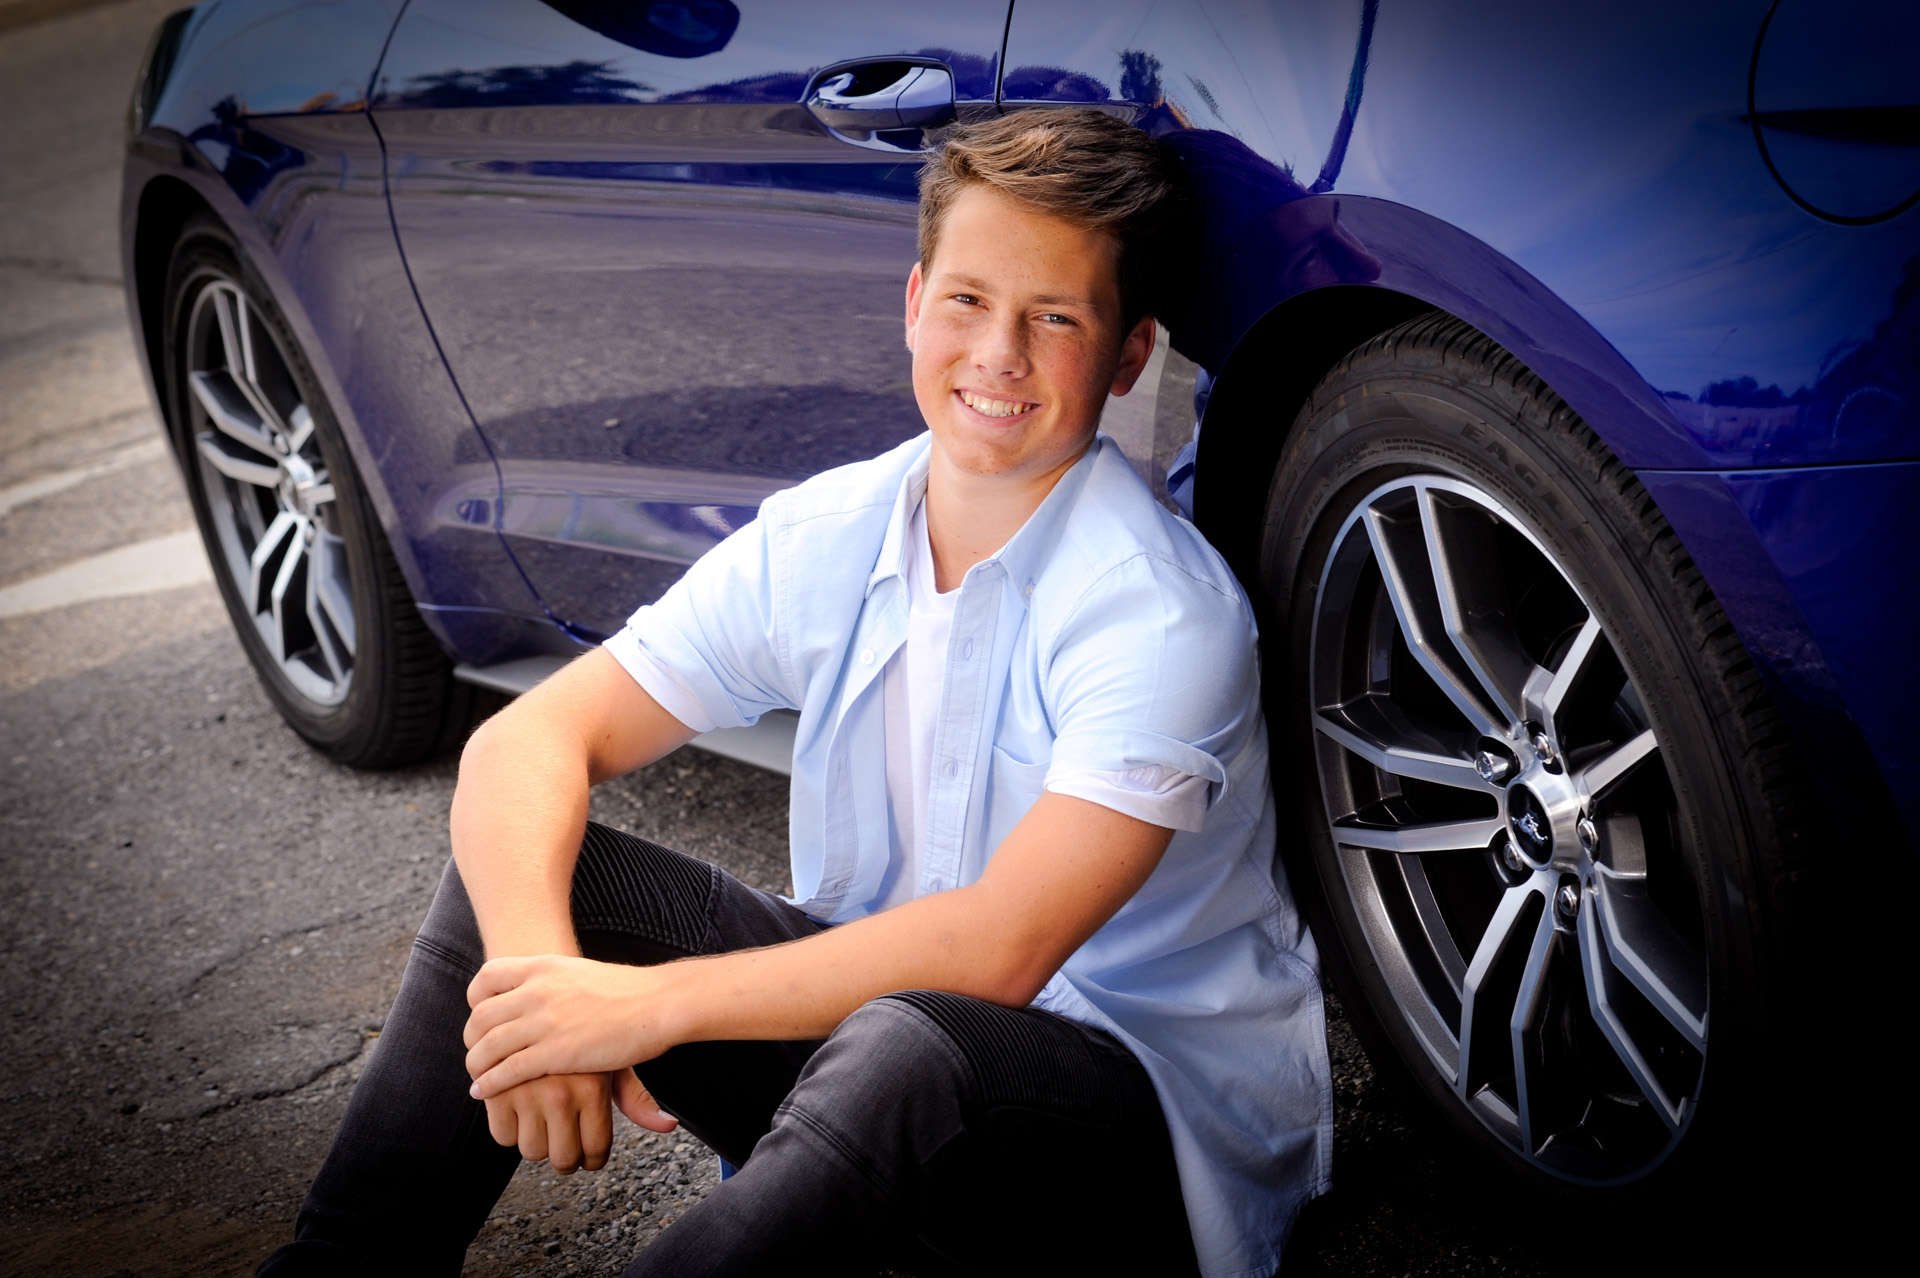 Best Detroit senior photographer's high school senior picture of a Bishop Foley senior on next to his beloved Mustang car in downtown Detroit, Michigan.